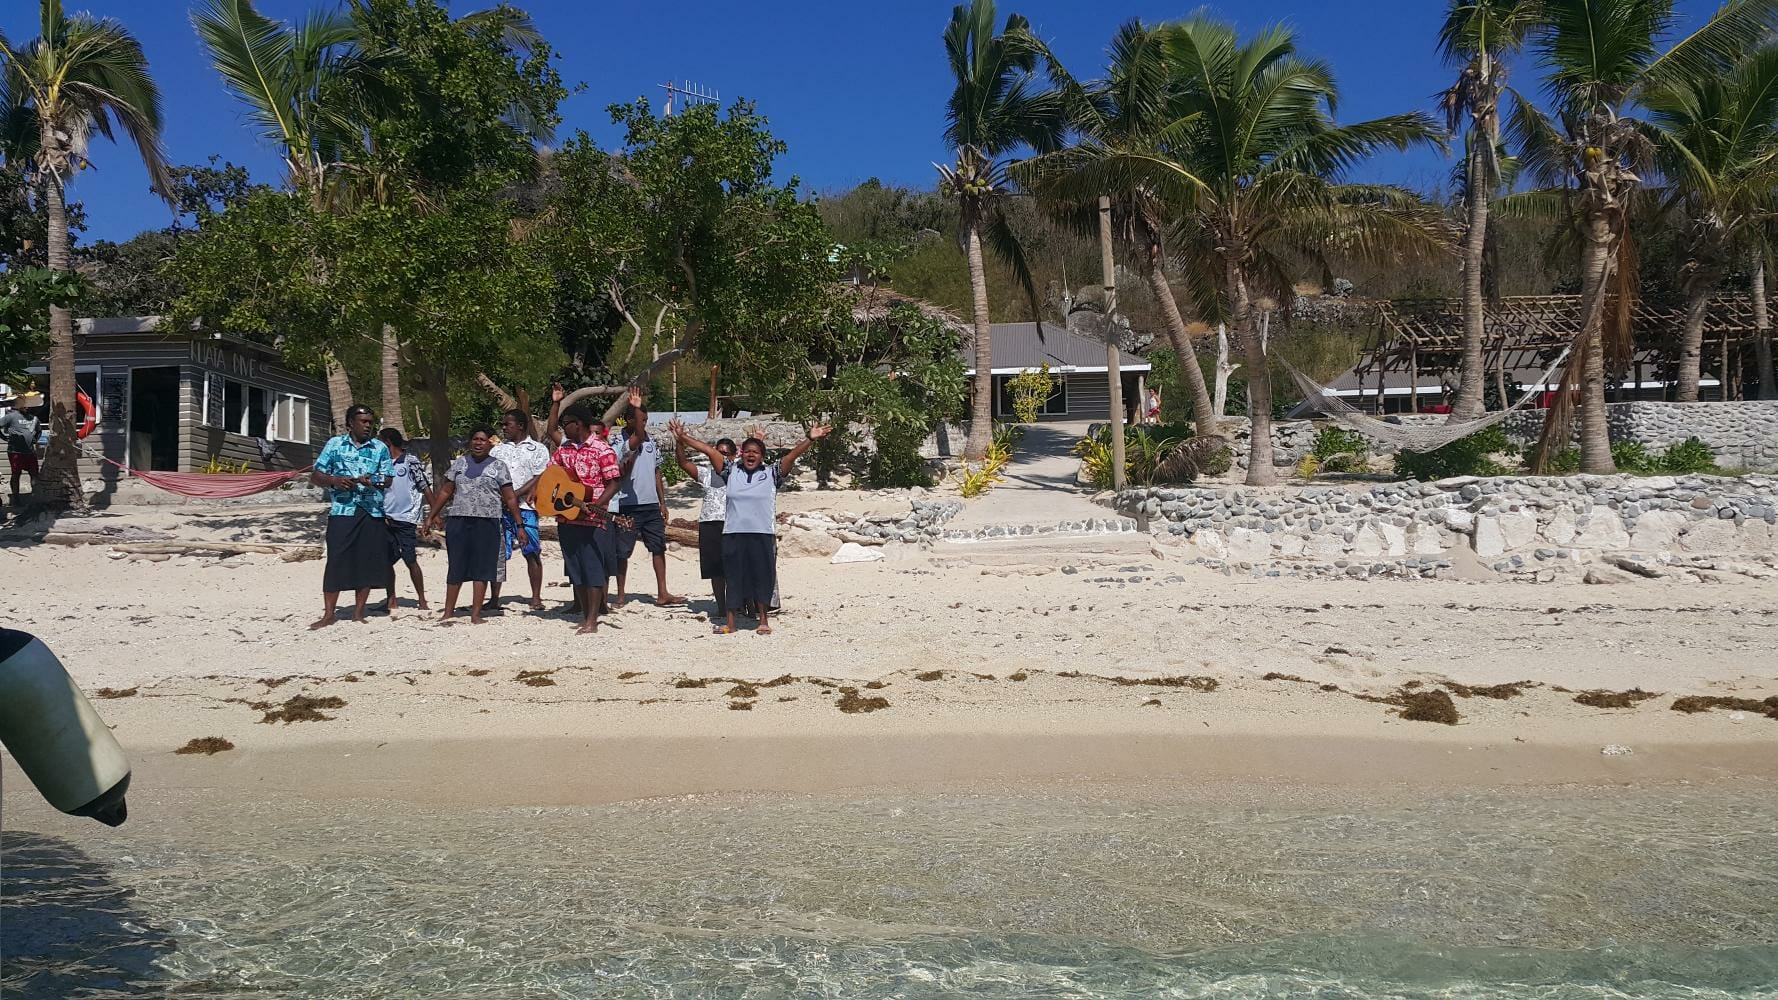 Lovely Fijian welcome as you arrive at Barefoot Kuata Island in the Yasawas in Fiji